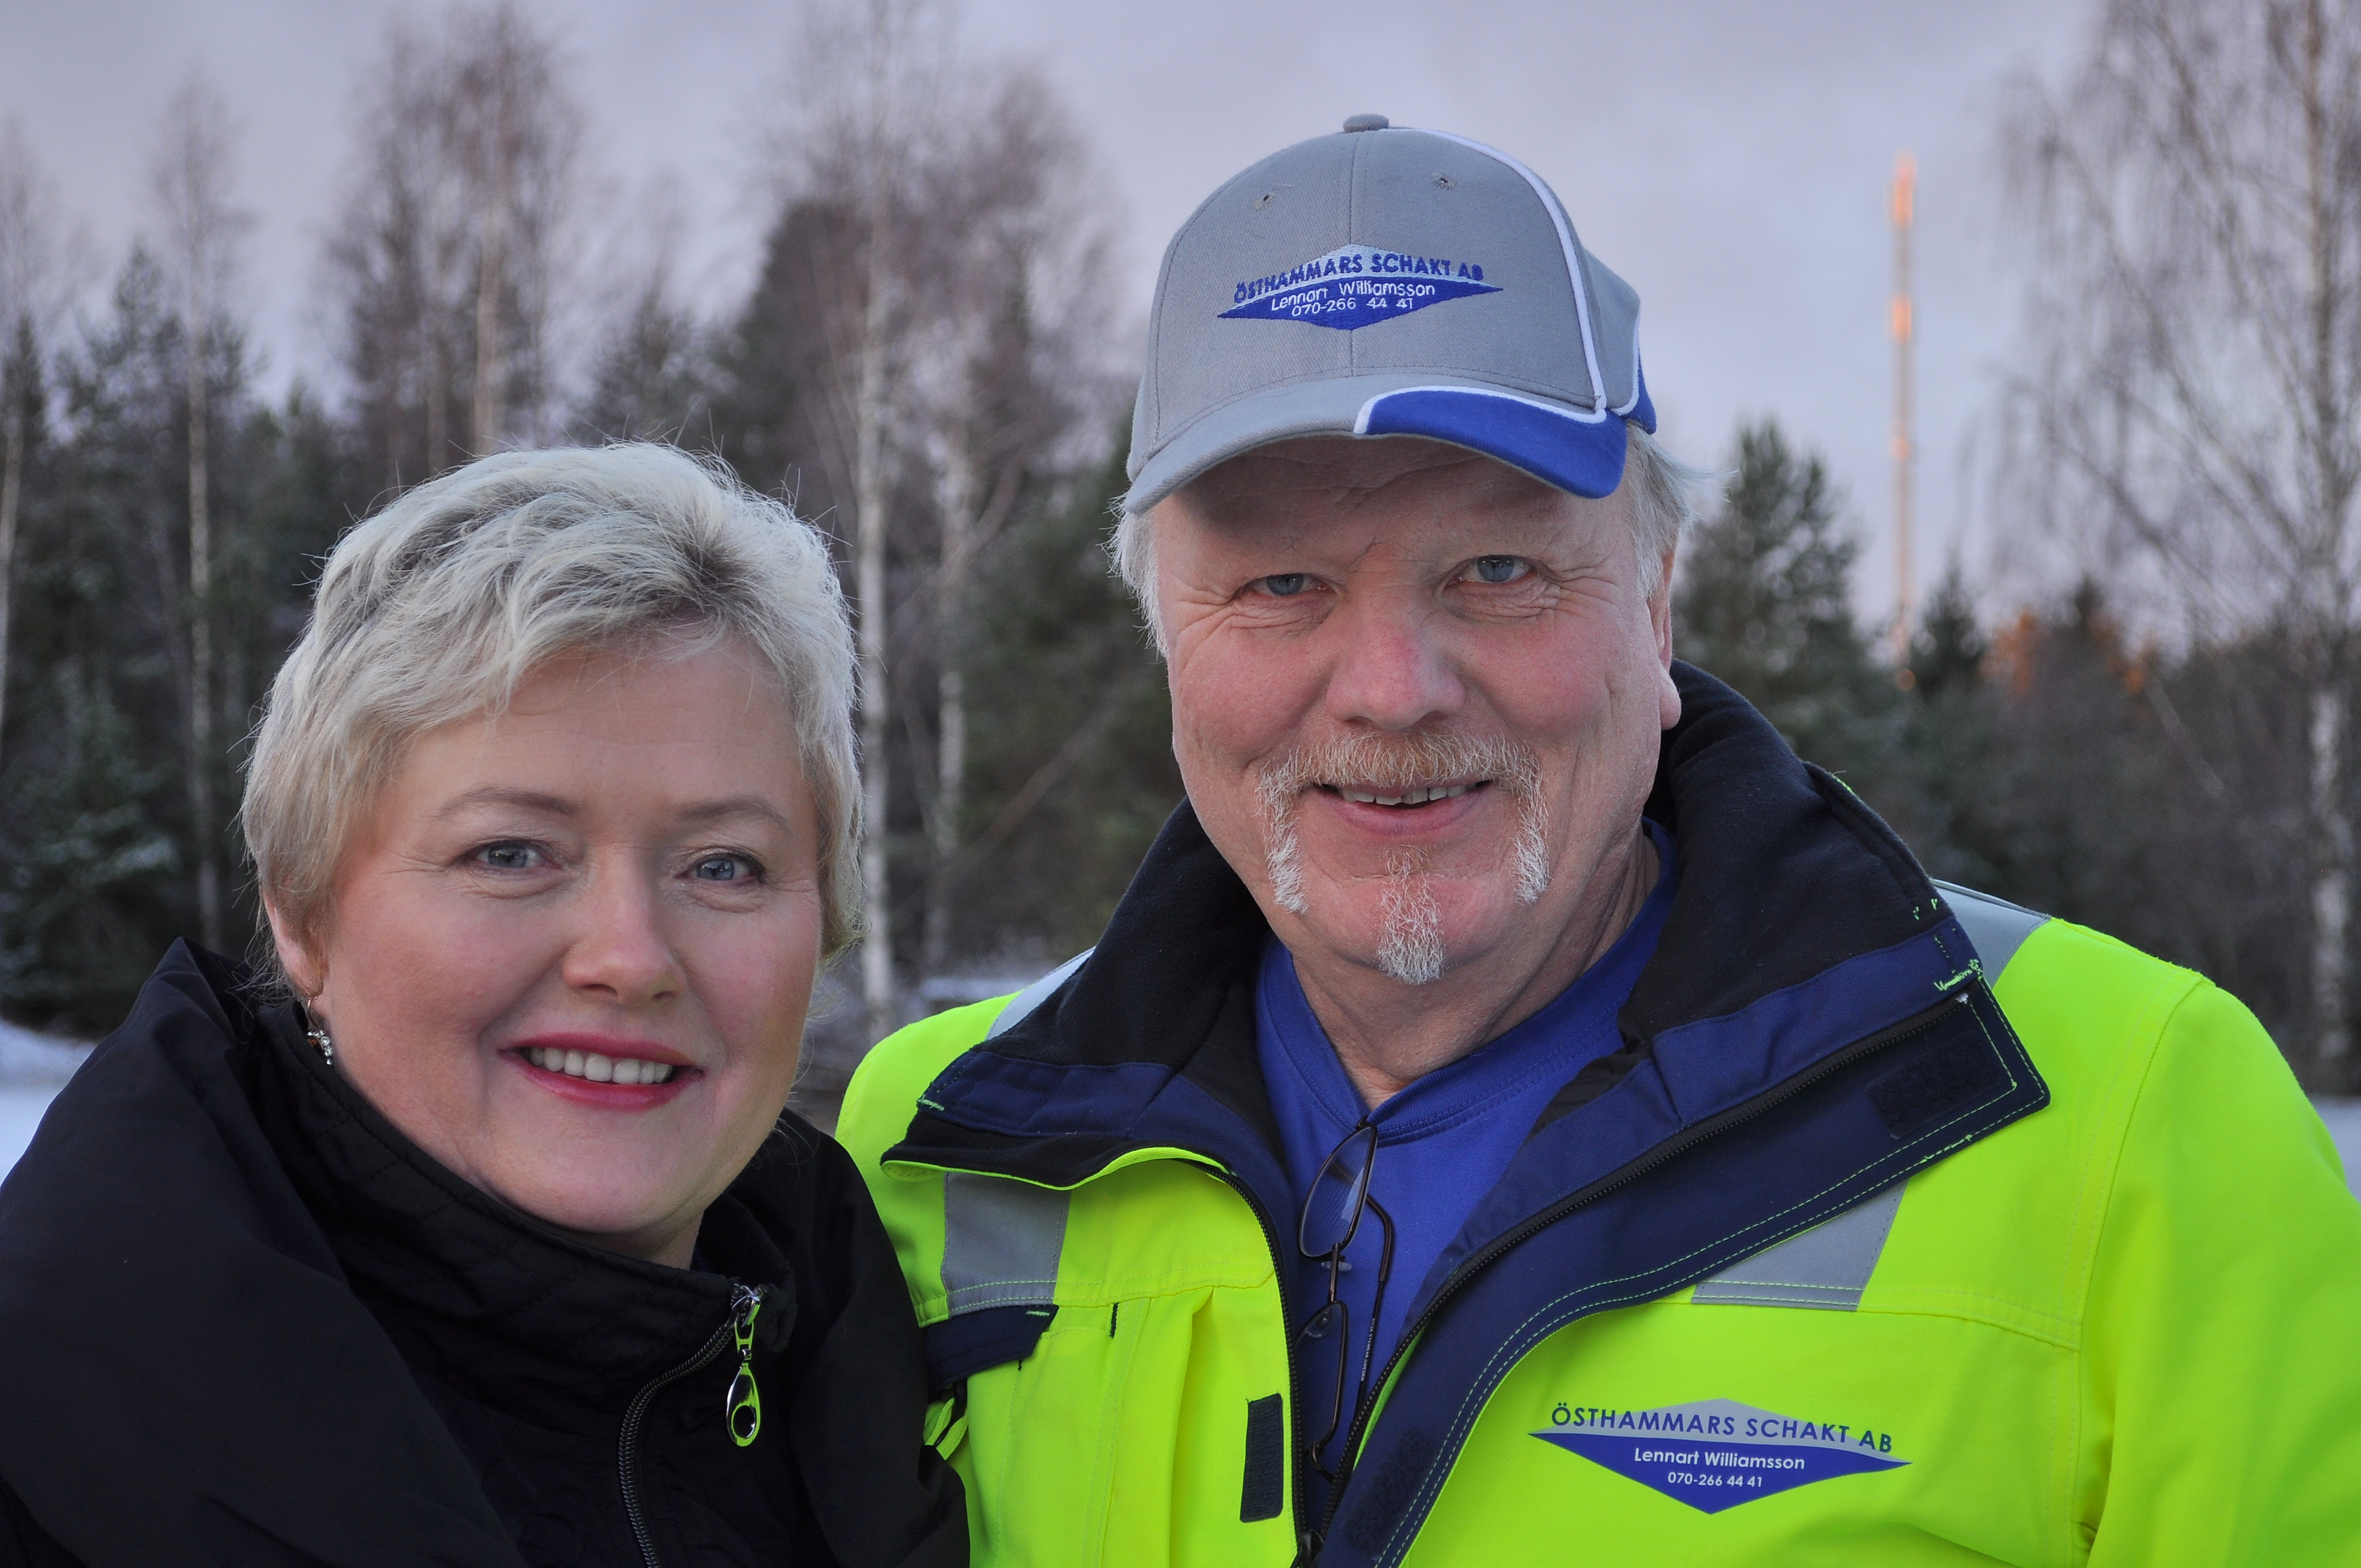 Christina Williamsson Liw och Lennart Williamsson